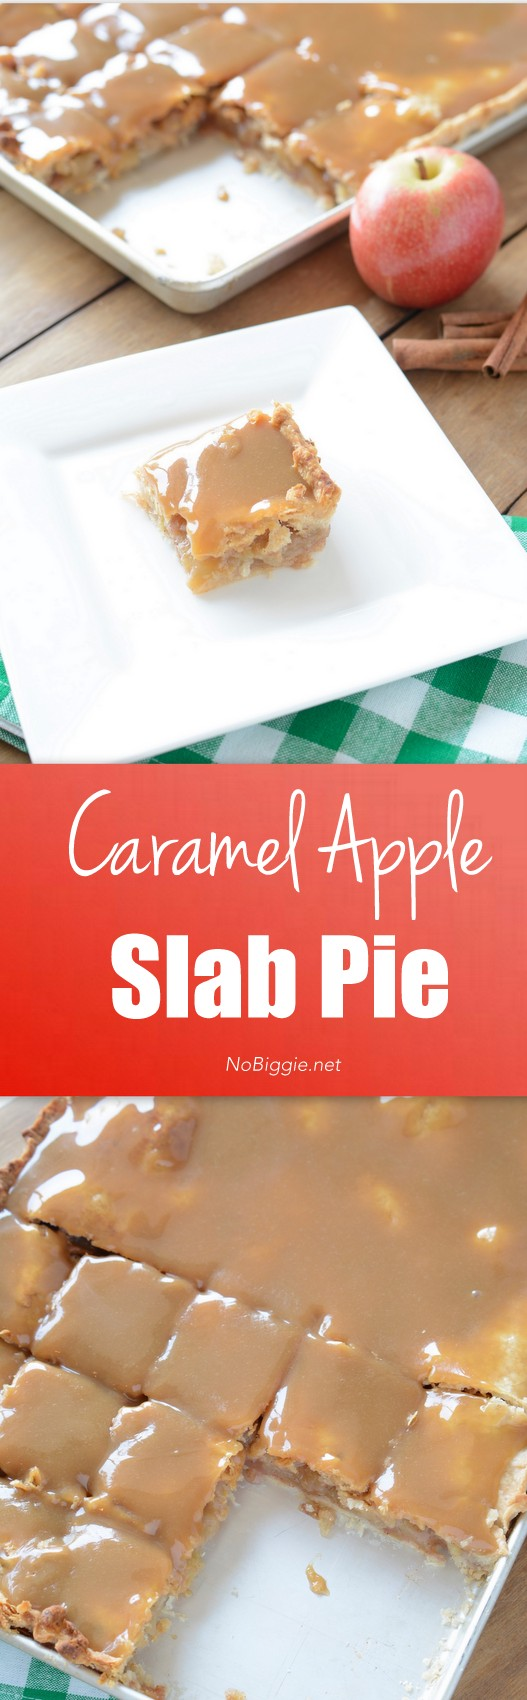 Apple pie just got a raise! Caramel Apple Slab Pie is the perfect dessert for Fall and great for serving a crowd. #applepie #caramelapple #caramelappledesserts #FallDesserts #feedacrowd #desserts #pie #slabpie